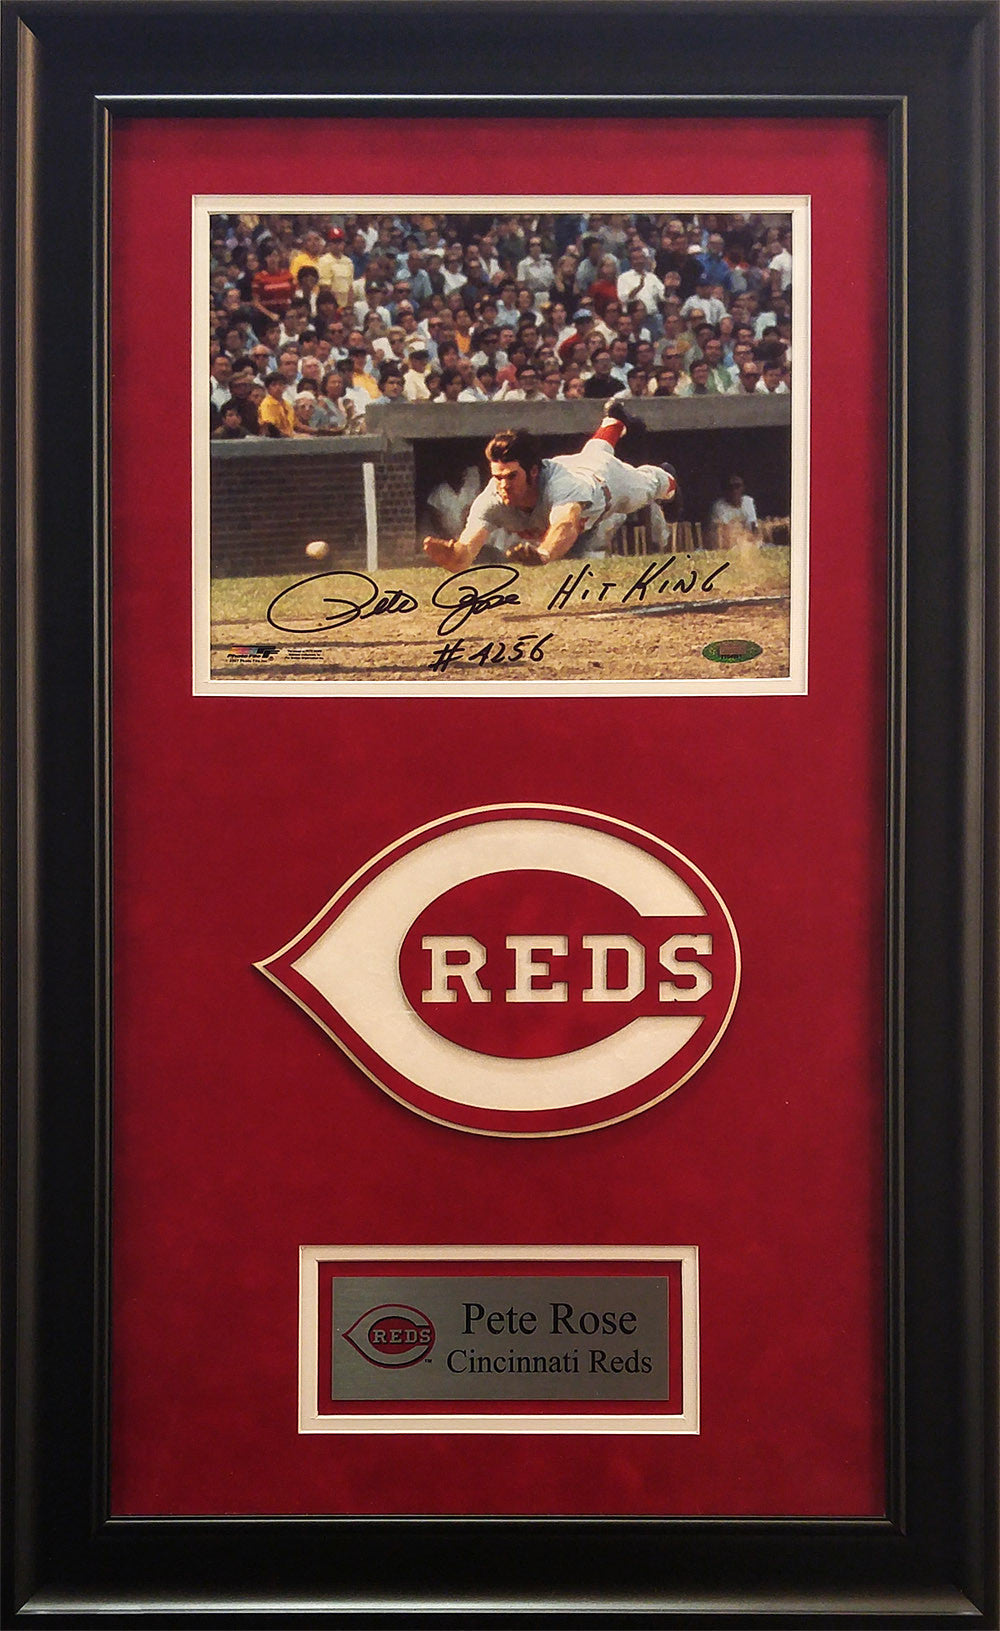 Pete Rose Signed Framed 8x10 Photo